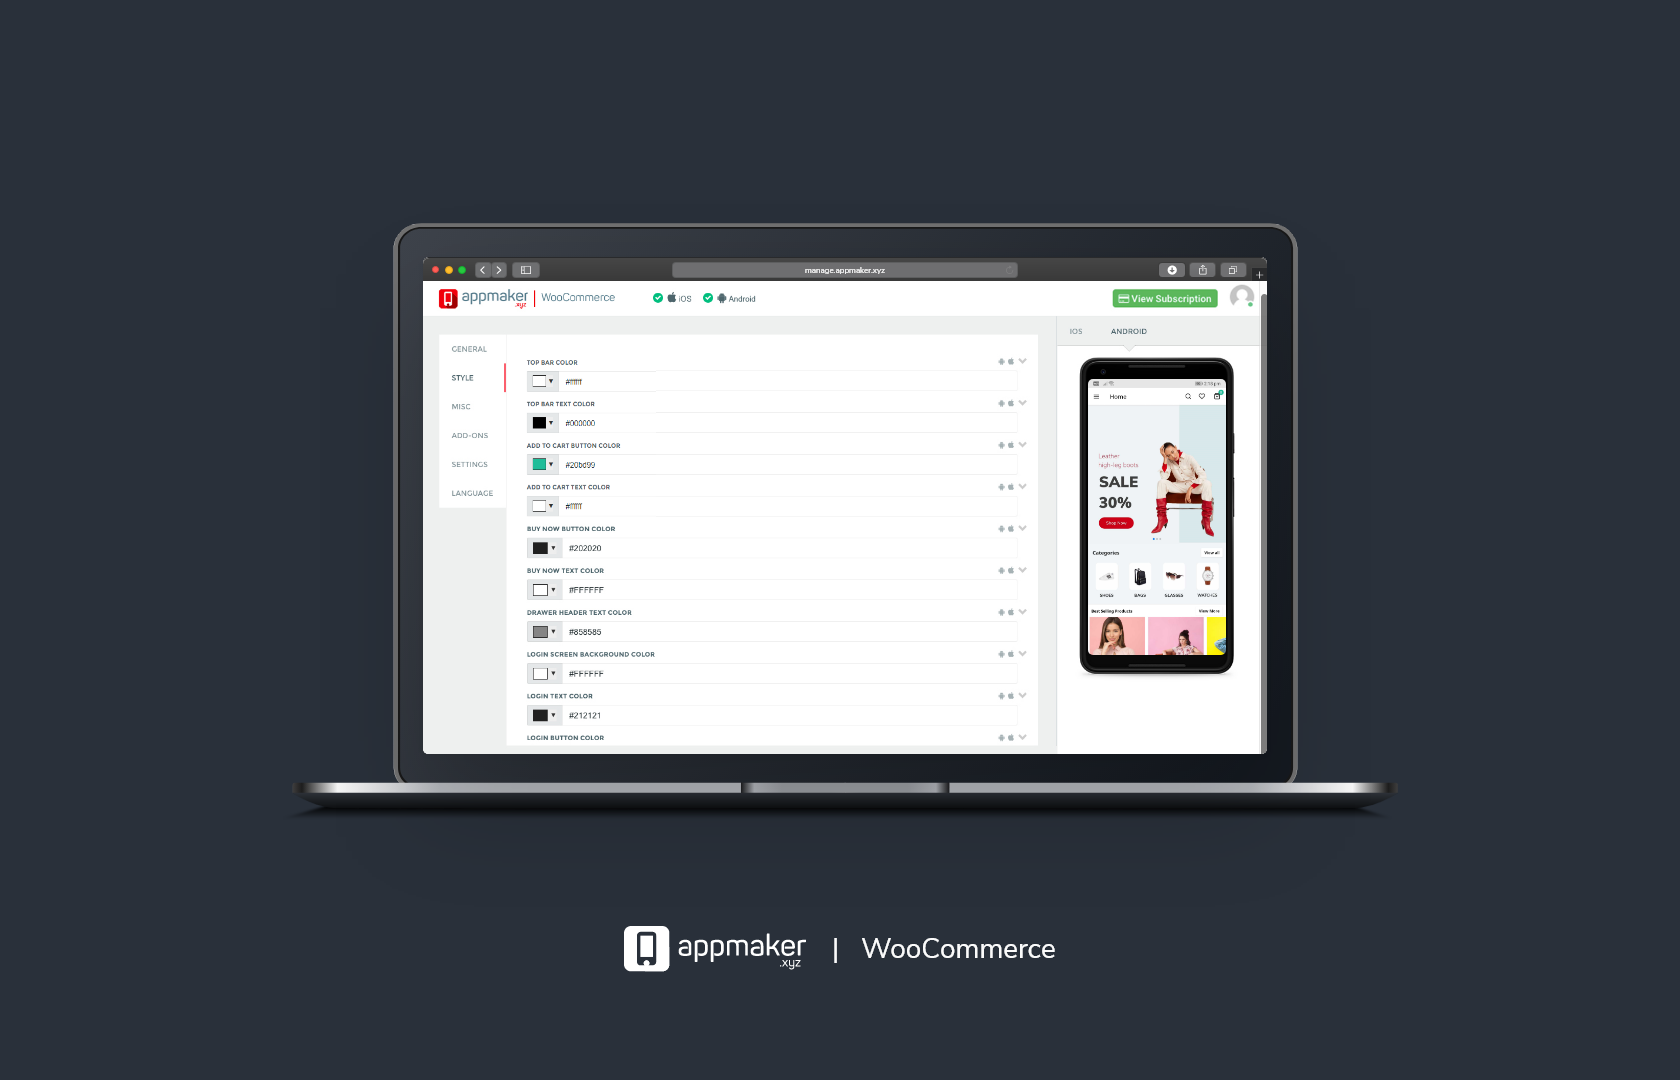 Appmaker – Convert WooCommerce to Android & iOS Native Mobile Apps